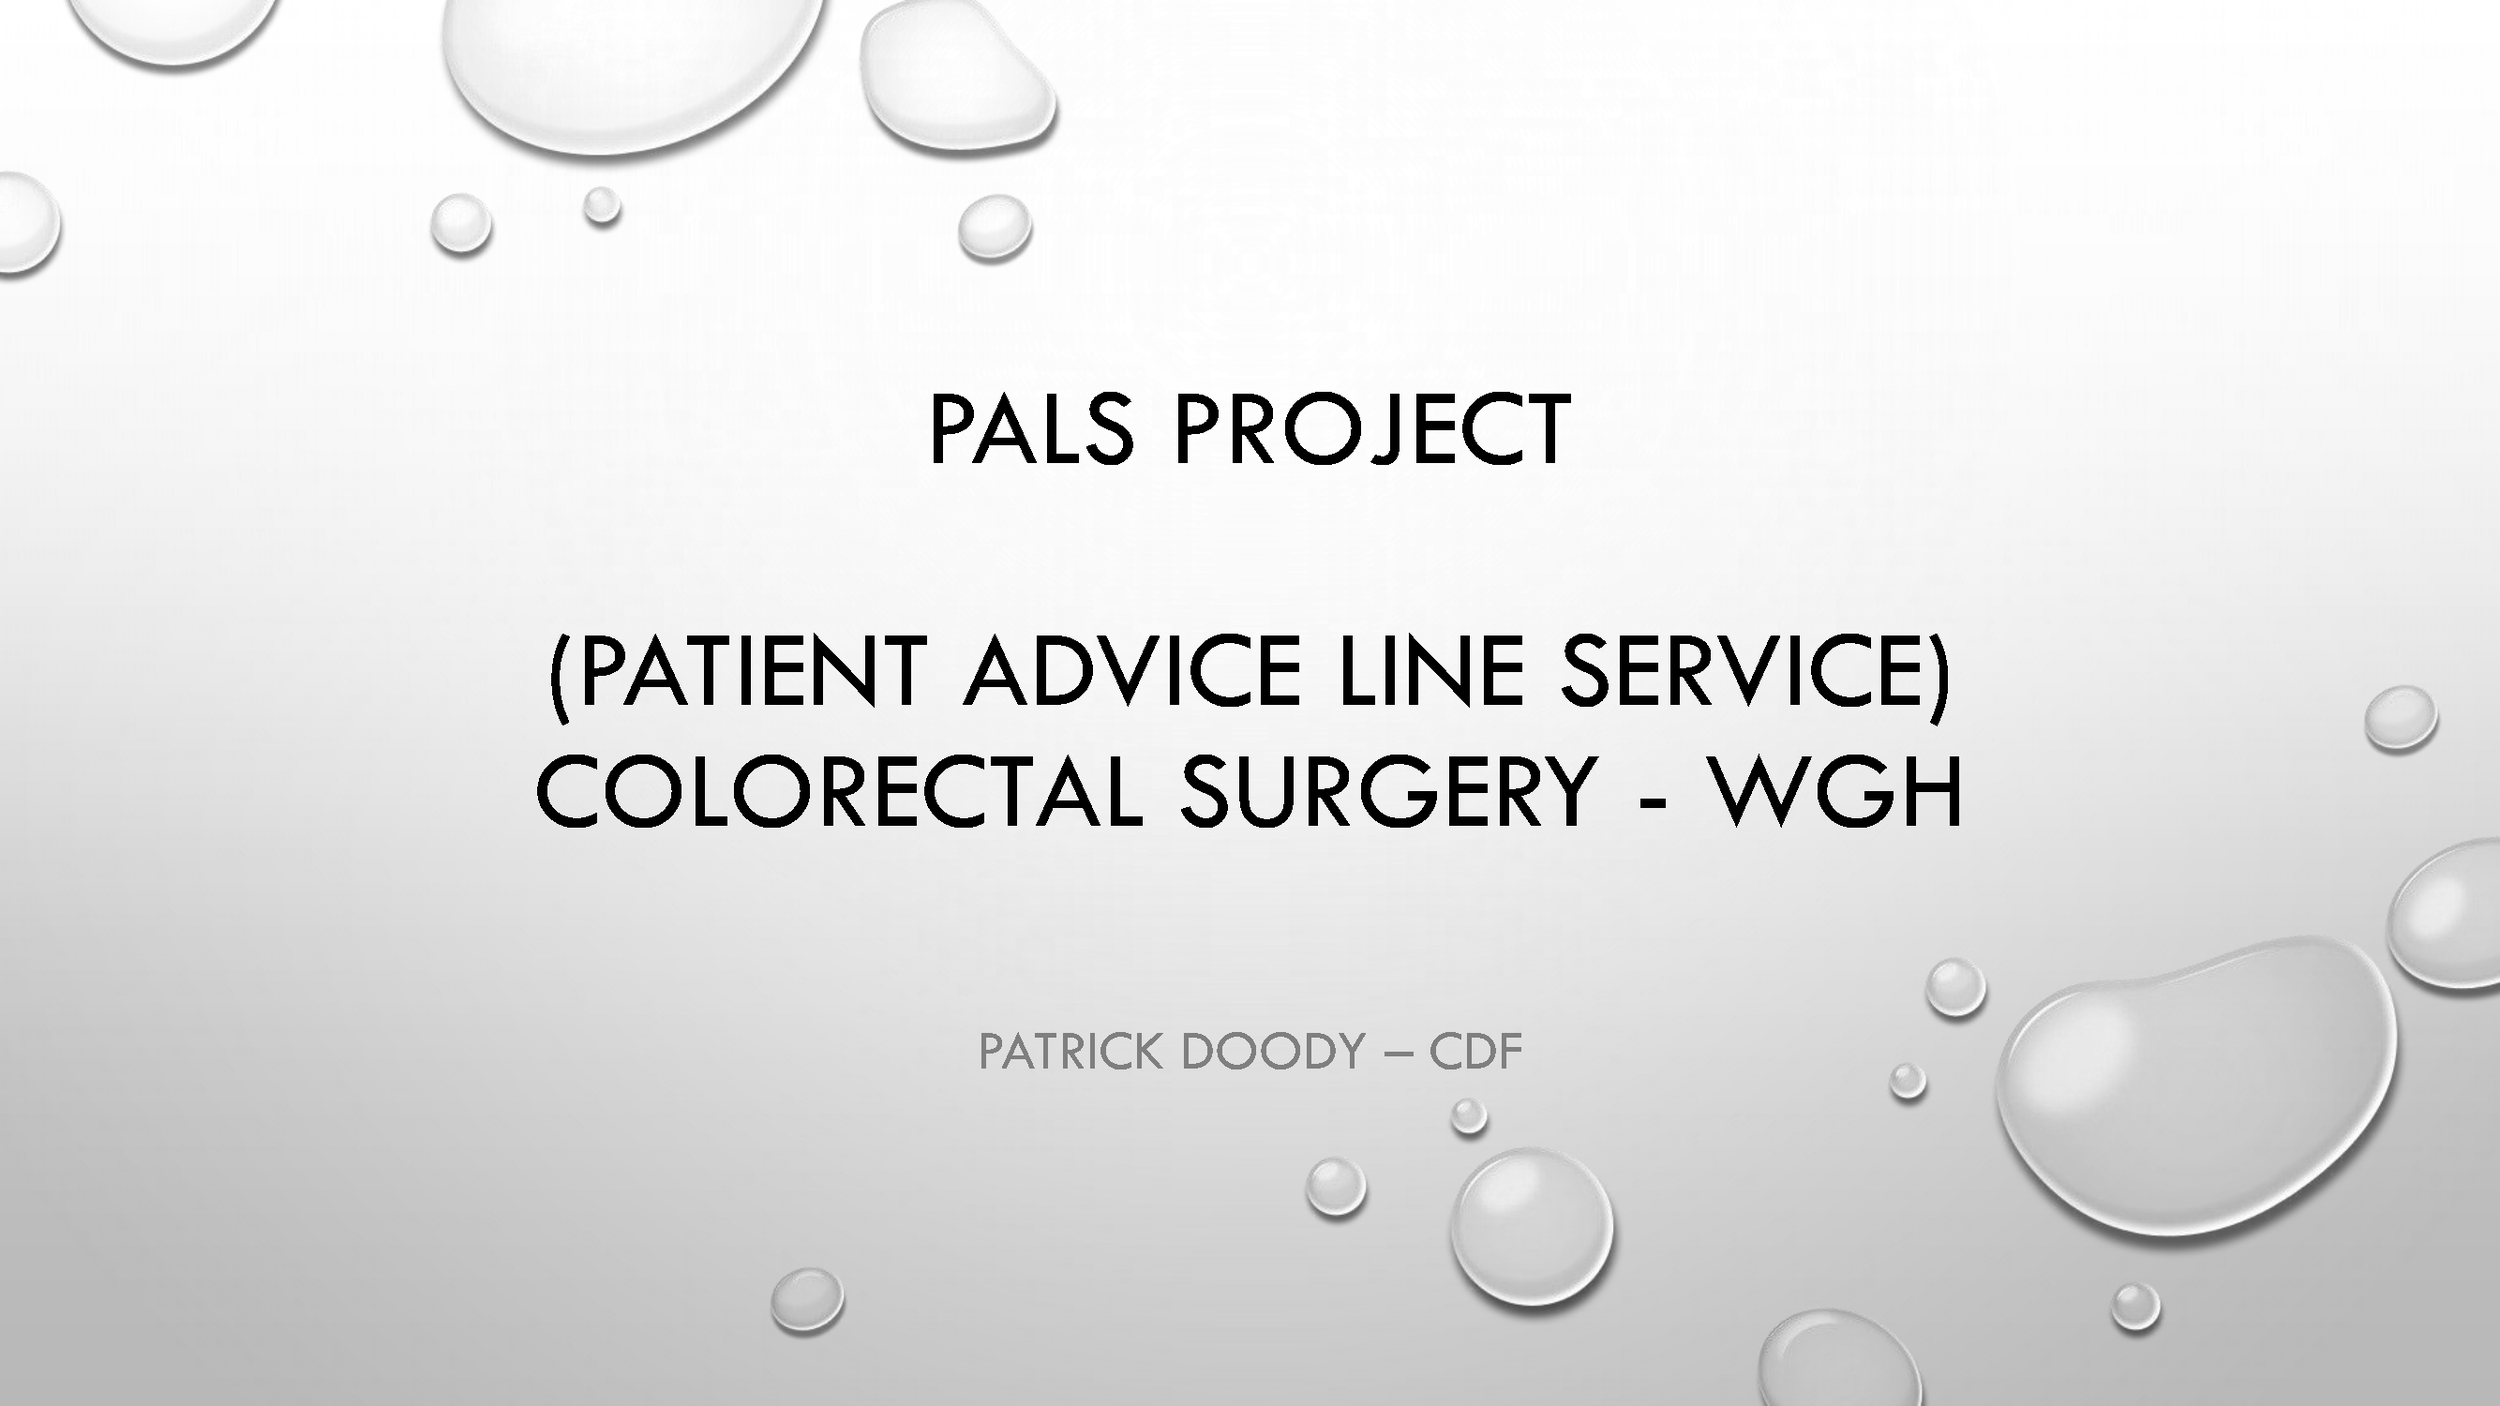 Download here Patrick Doody's presentation on The patient advice line service project. -